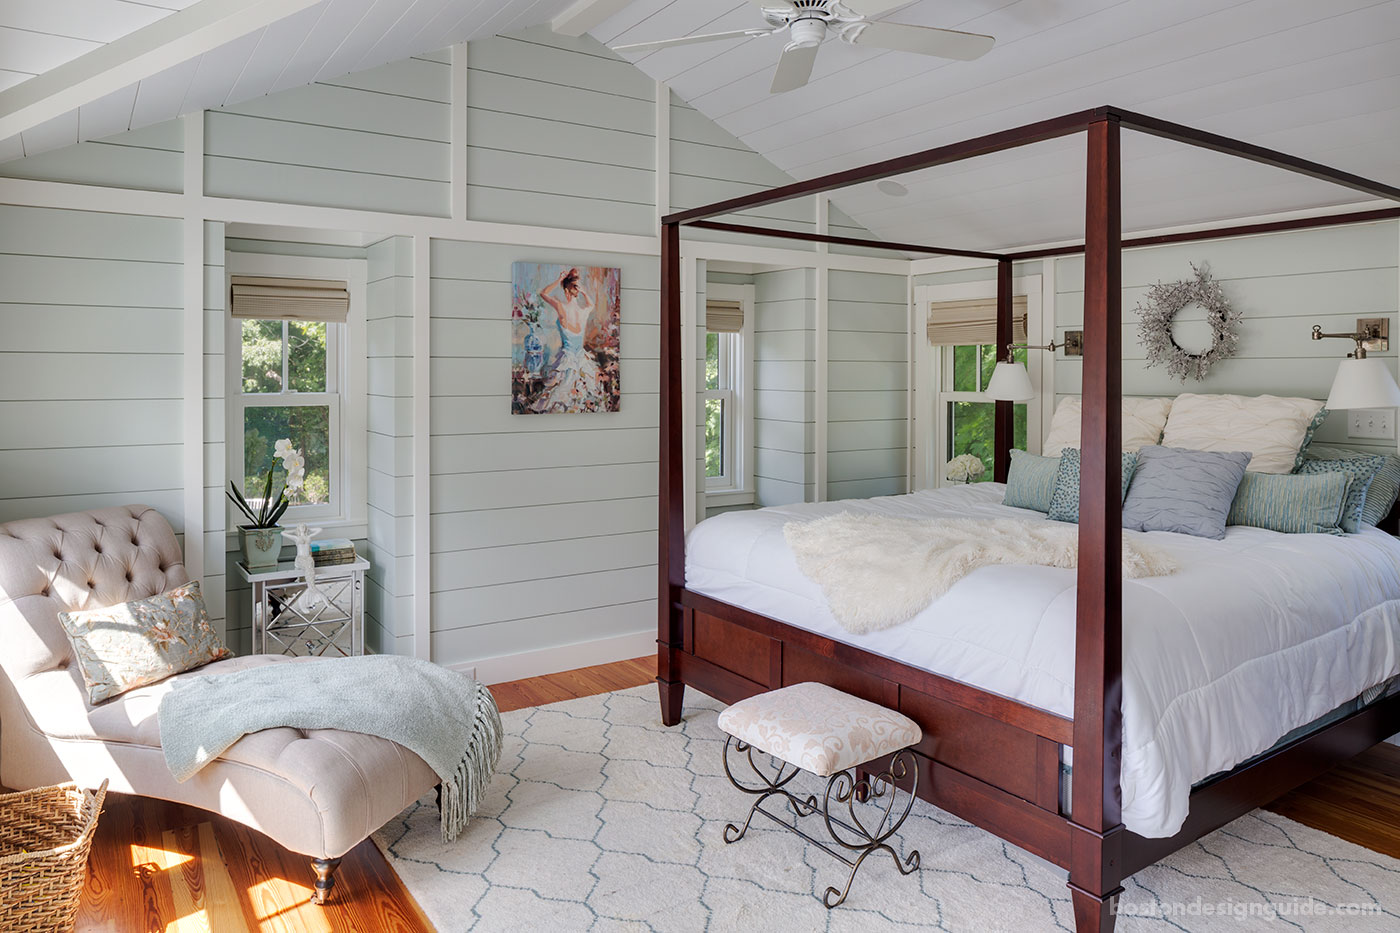 Coastal bedroom with nickel gap wood paneling by custom home builder Bannon Custom Builders